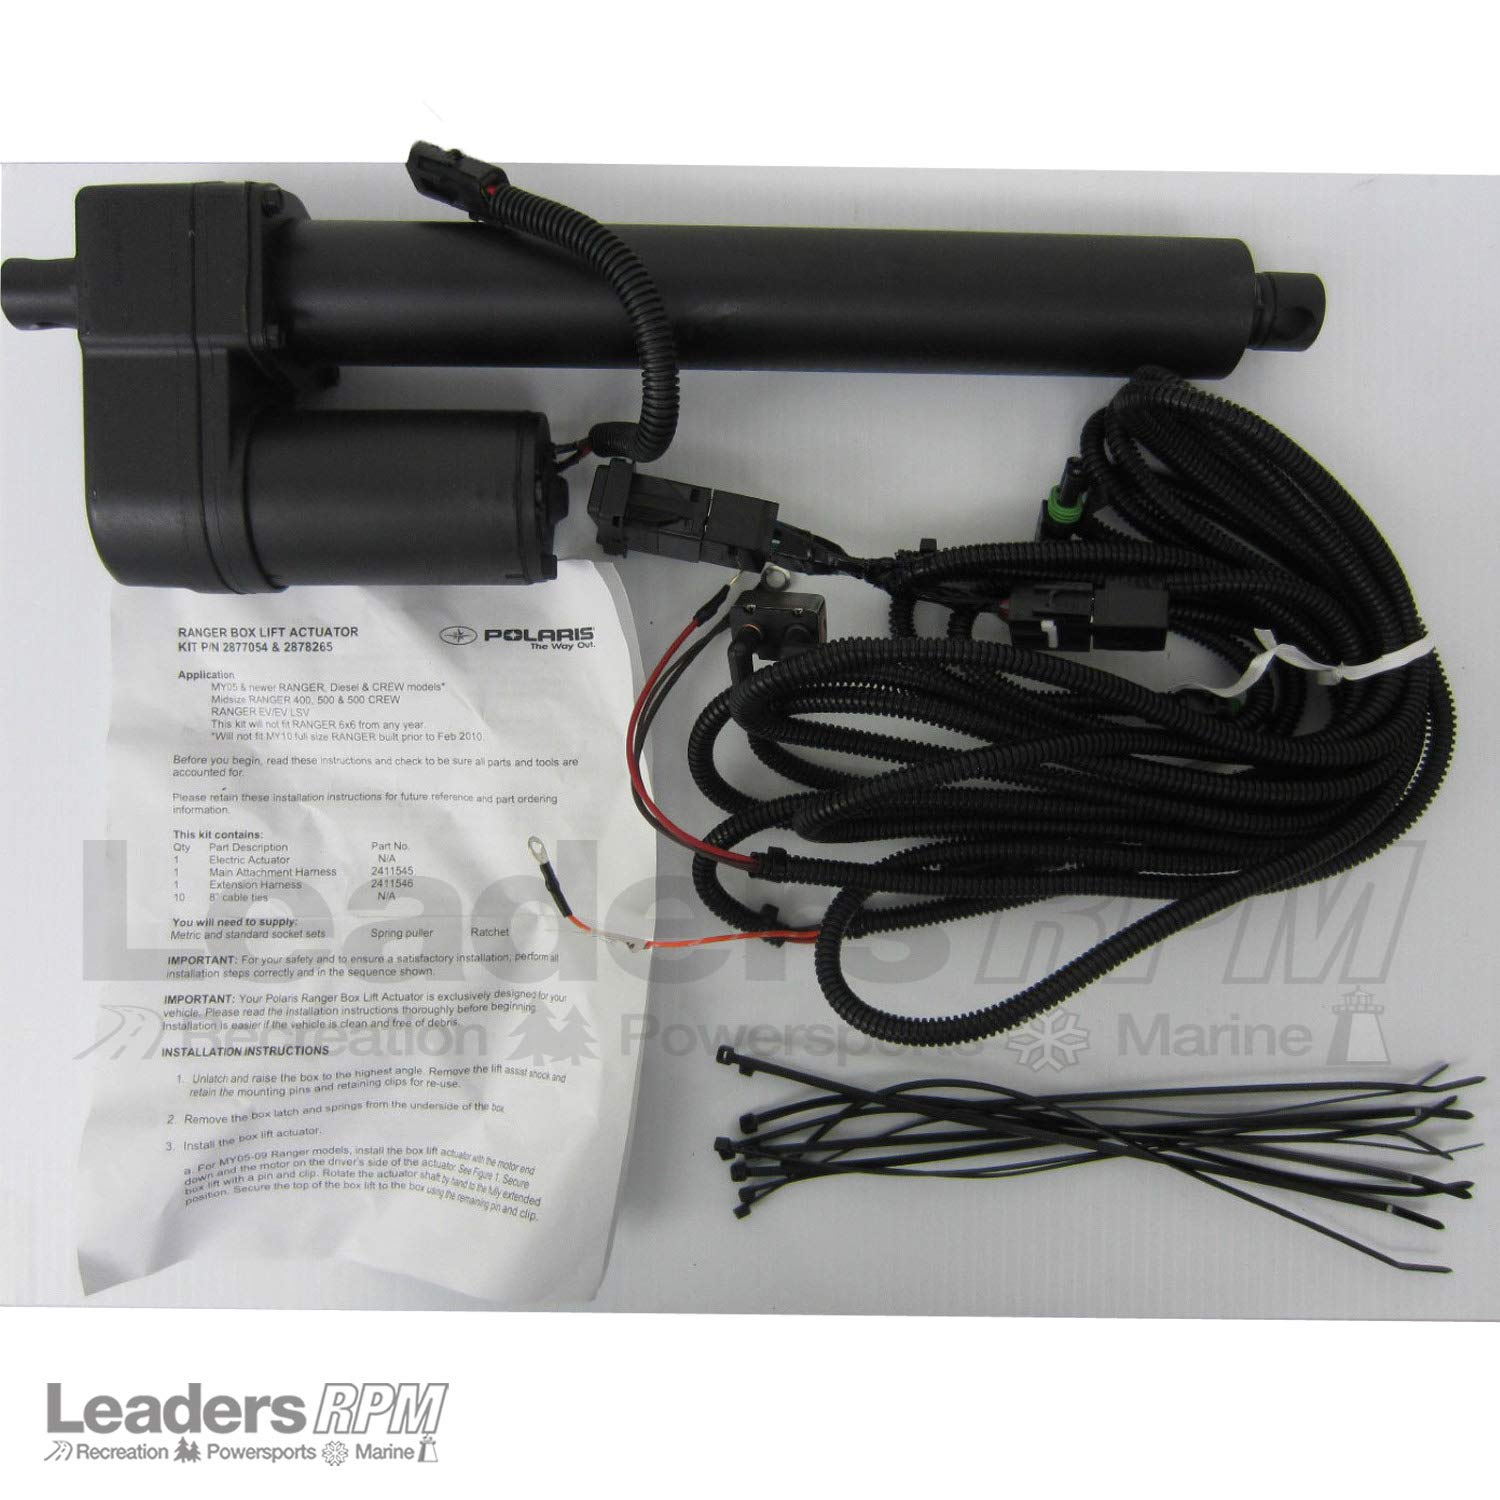 Amazon.com: Pure Polaris OEM Ranger Dump Bed Actuator. 2877054 ... on fall protection harness, amp bypass harness, radio harness, nakamichi harness, dog harness, maxi-seal harness, cable harness, suspension harness, oxygen sensor extension harness, pony harness, safety harness, pet harness, engine harness, swing harness, electrical harness, alpine stereo harness, battery harness, obd0 to obd1 conversion harness,